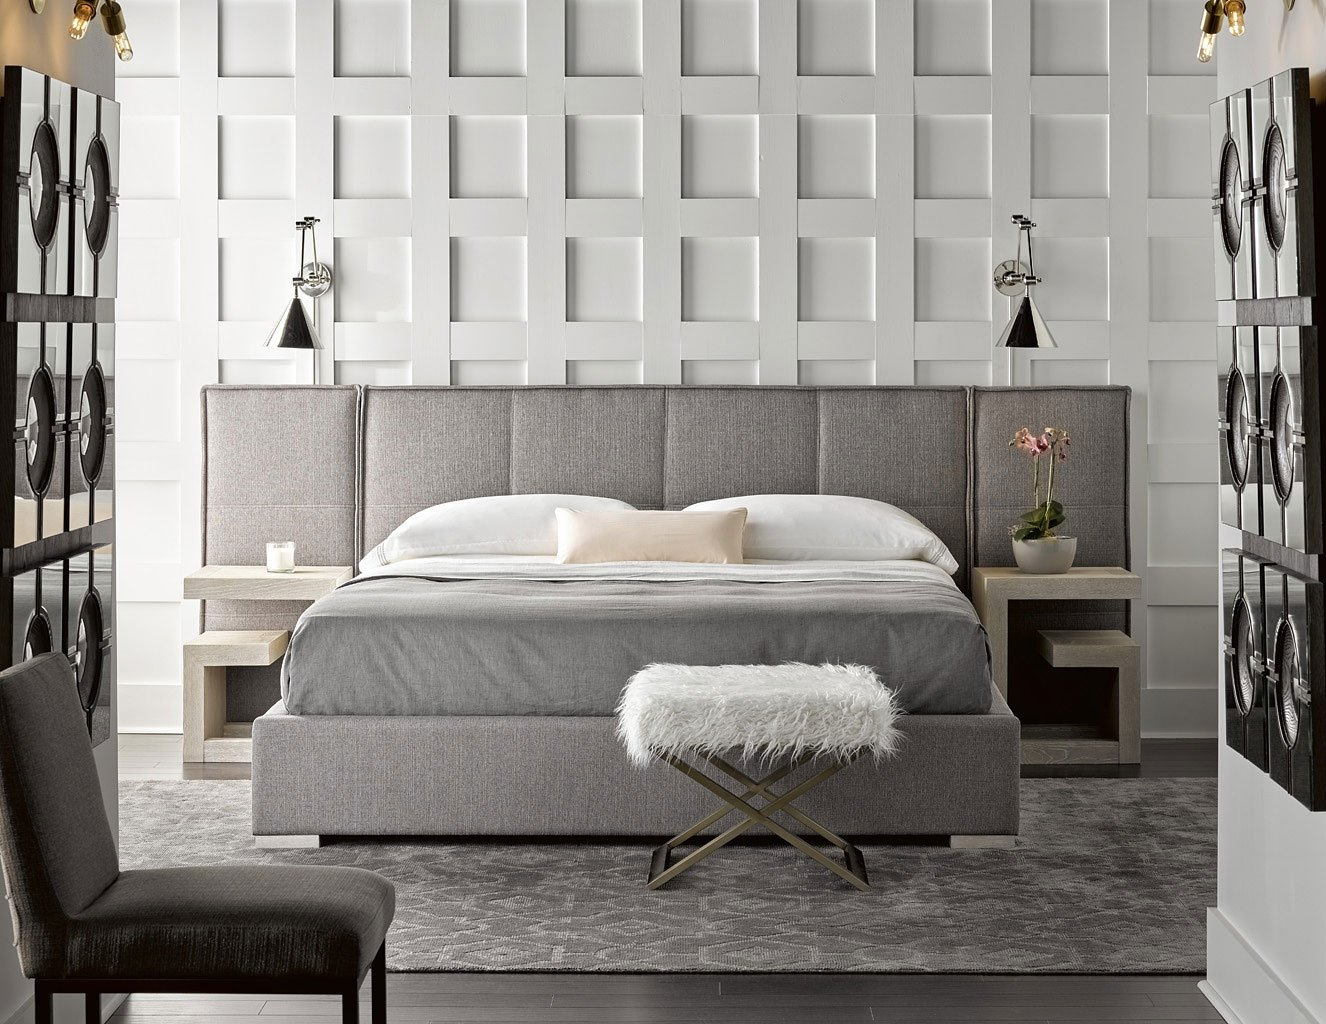 Modern Connery Upholstered Bedroom Set w/ Panels (Flint)